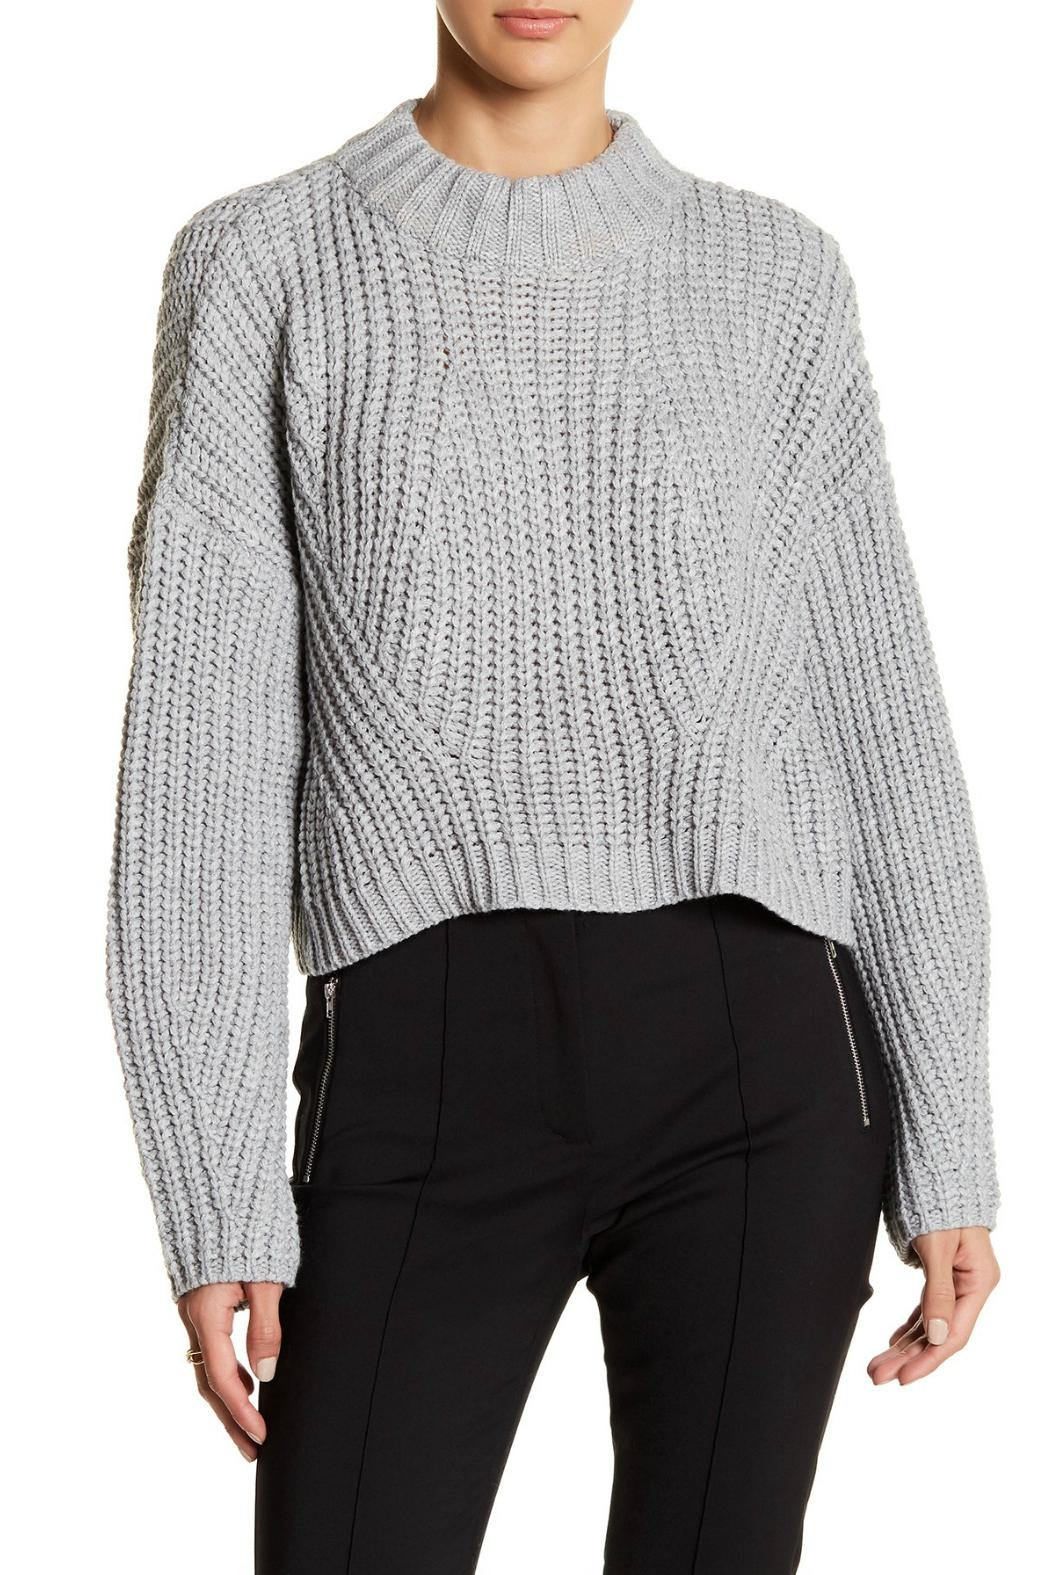 Gracia Cropped Turtleneck Sweater - Main Image